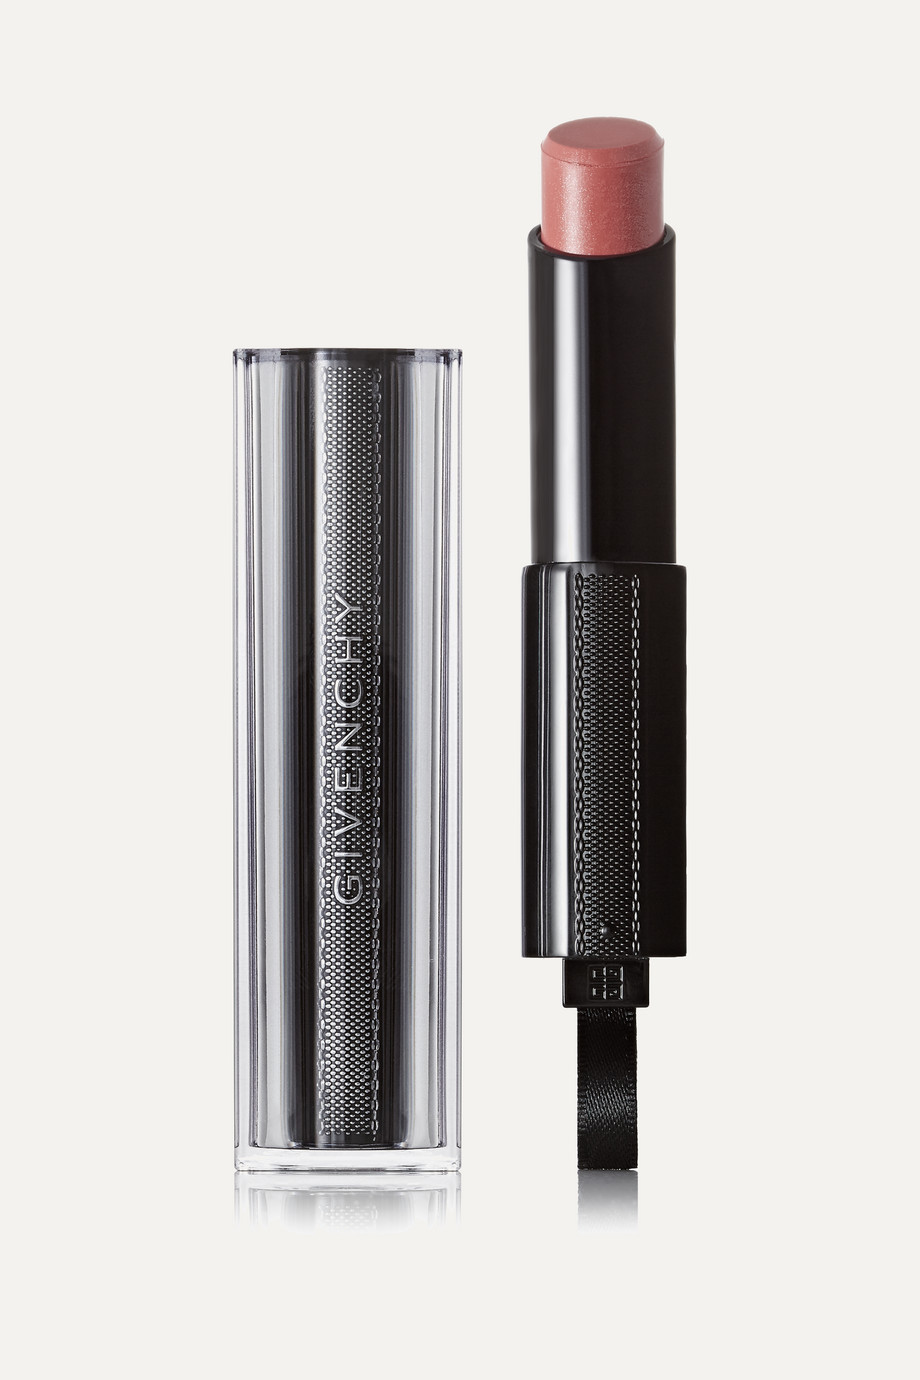 Rouge Interdit Vinyl Lipstick - Nude Ravageur No. 01, by Givenchy Beauty